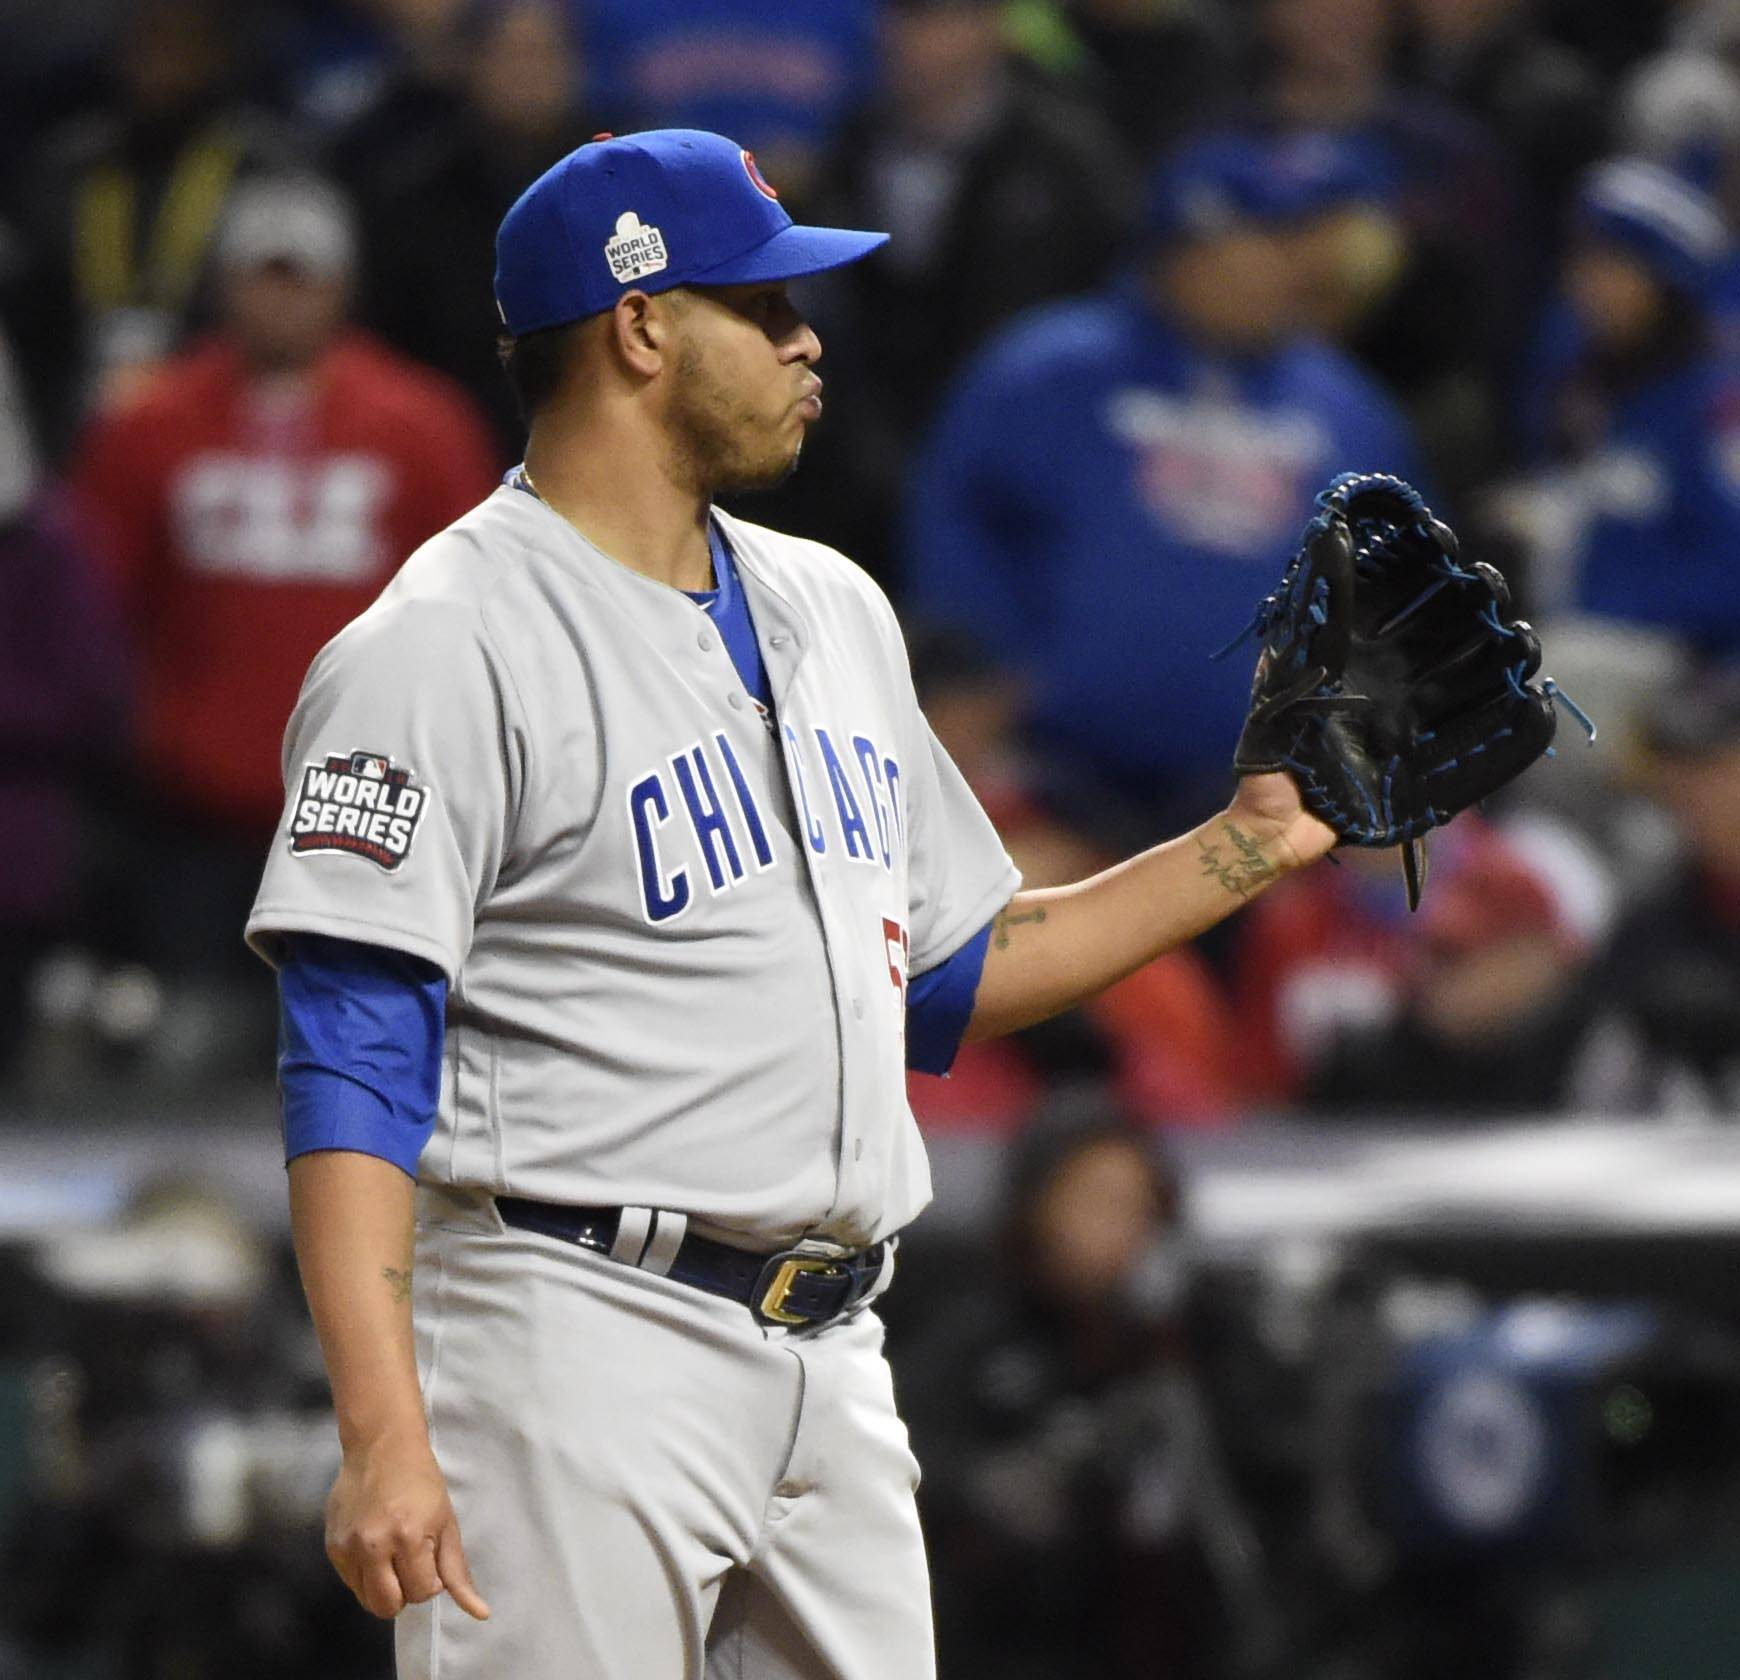 John Starks/jstarks@dailyherald.comChicago Cubs relief pitcher Hector Rondon reacts after giving up a three-run home run in the eighth inning Tuesday in Game 1 of the 2016 World Series in Cleveland.